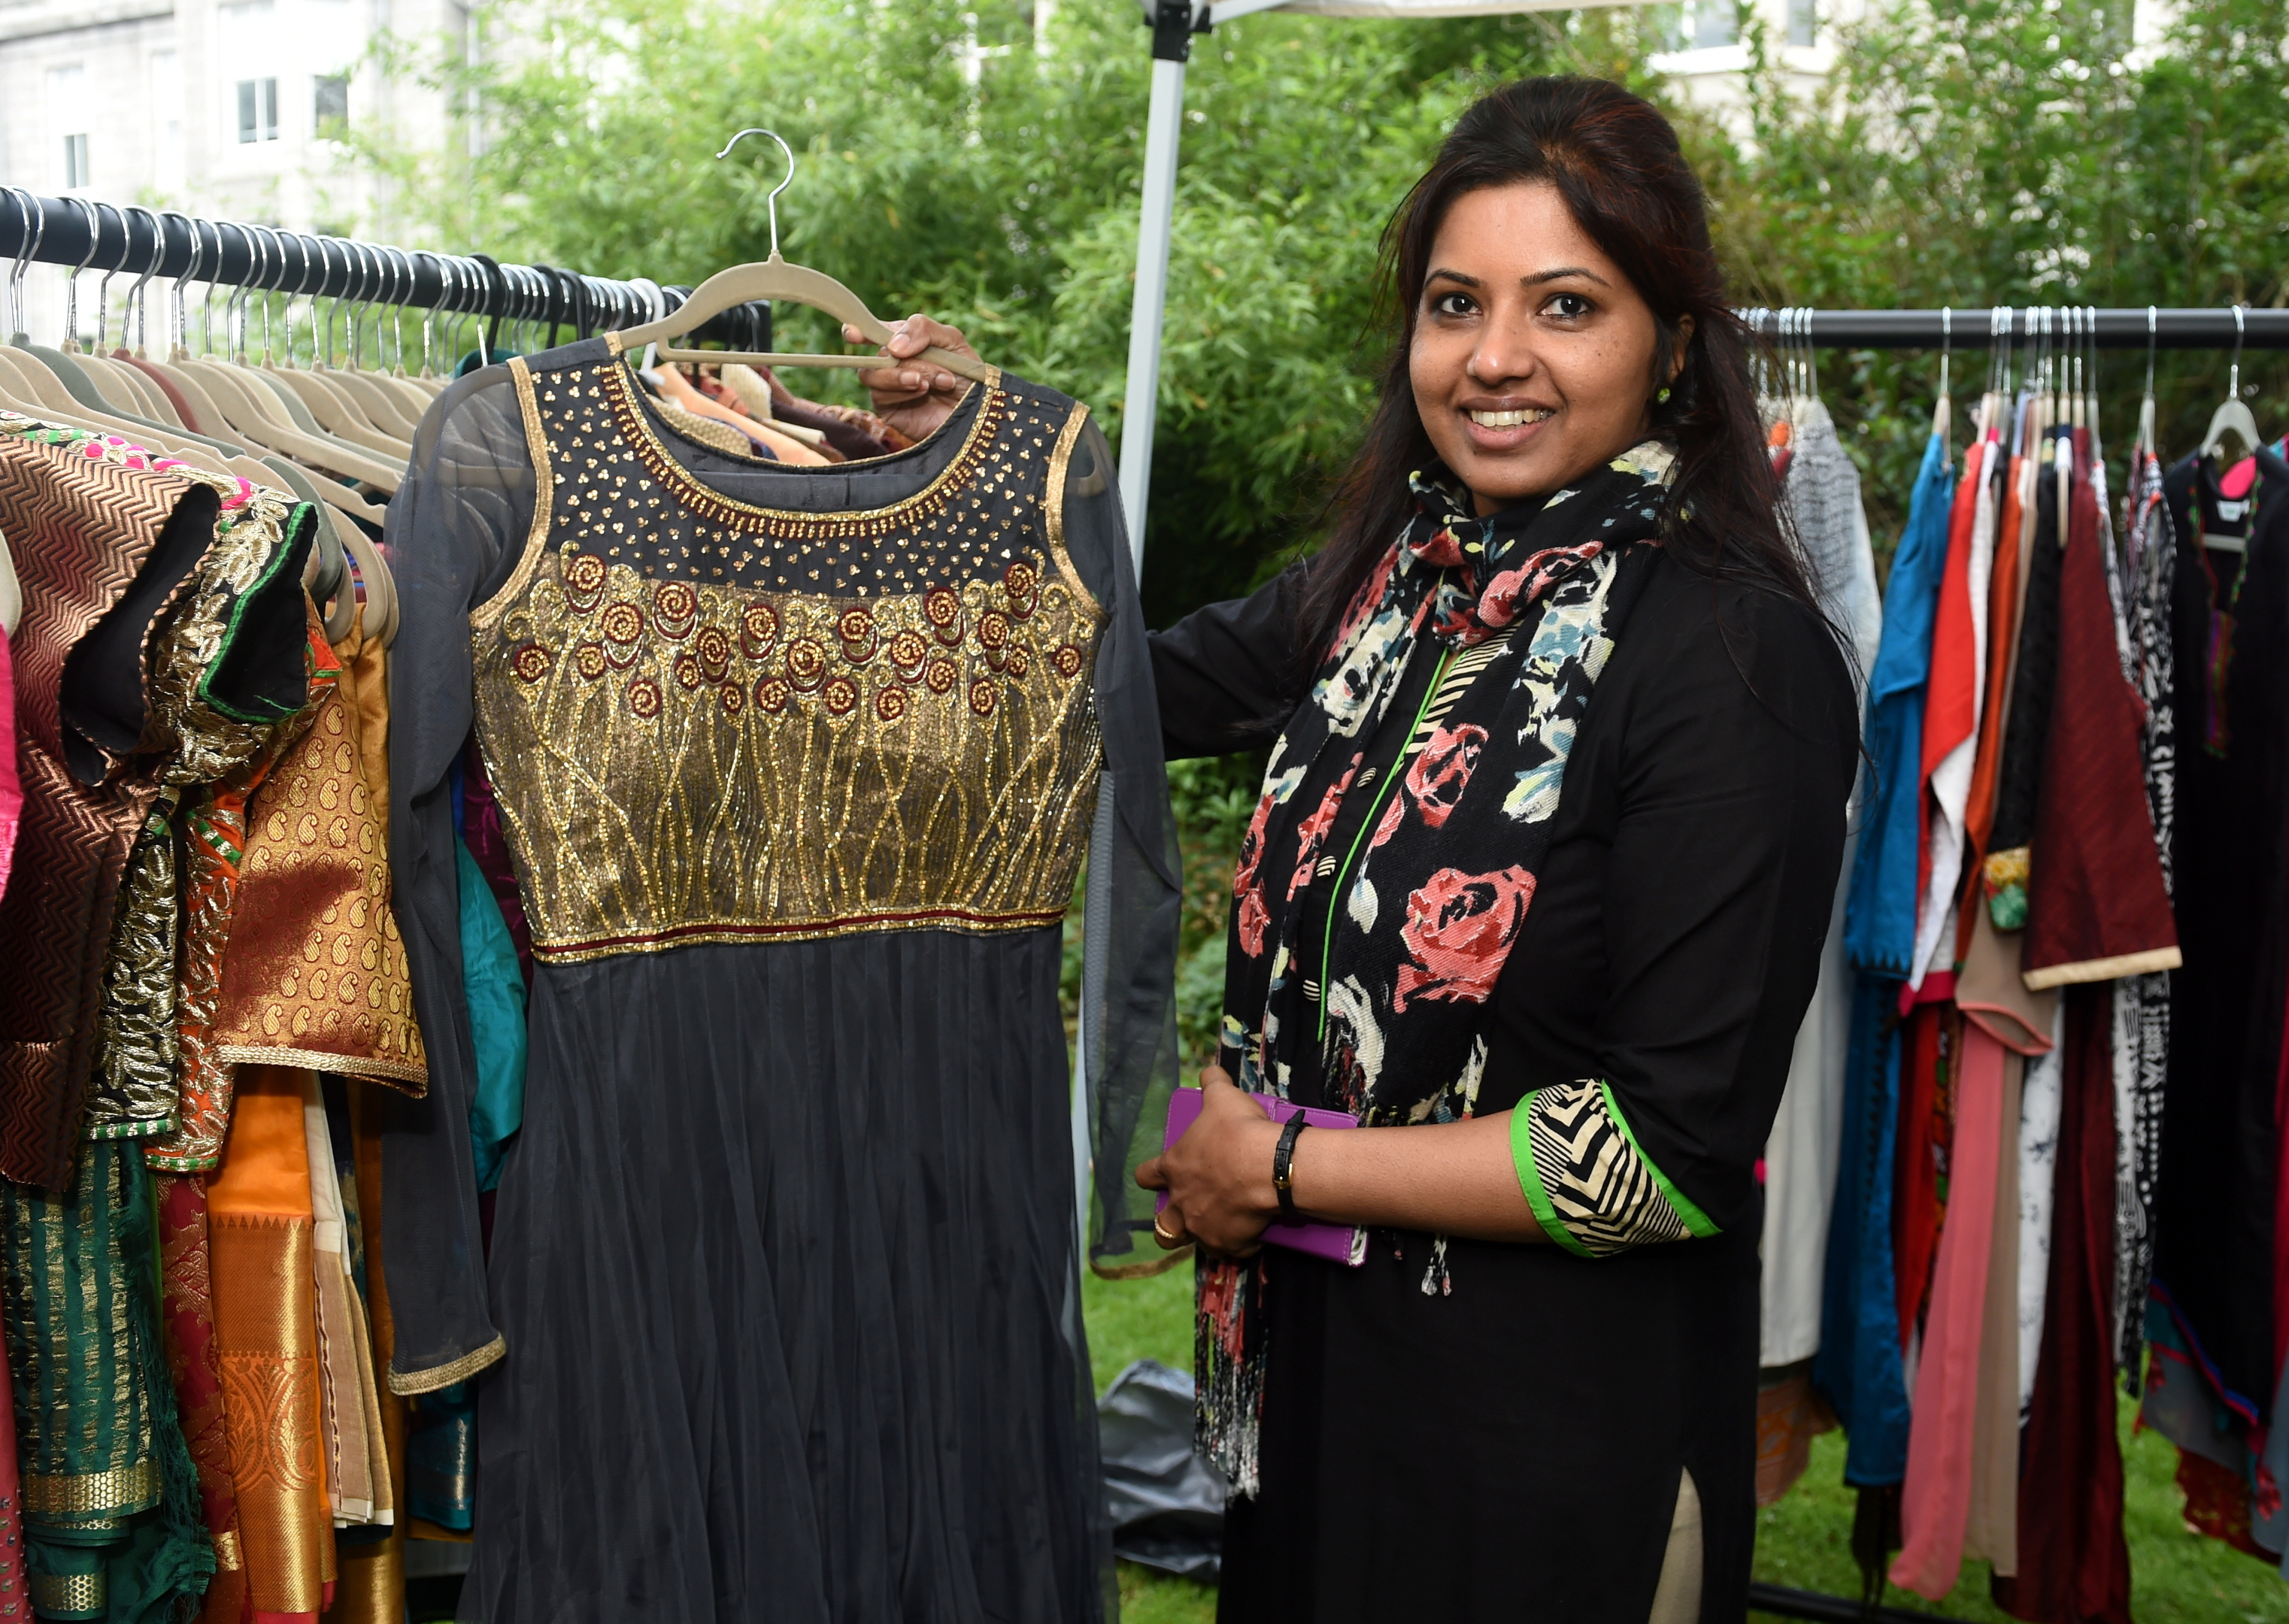 Lin Mathew shows off a black and gold dress at Rubislaw Terrace Gardens.